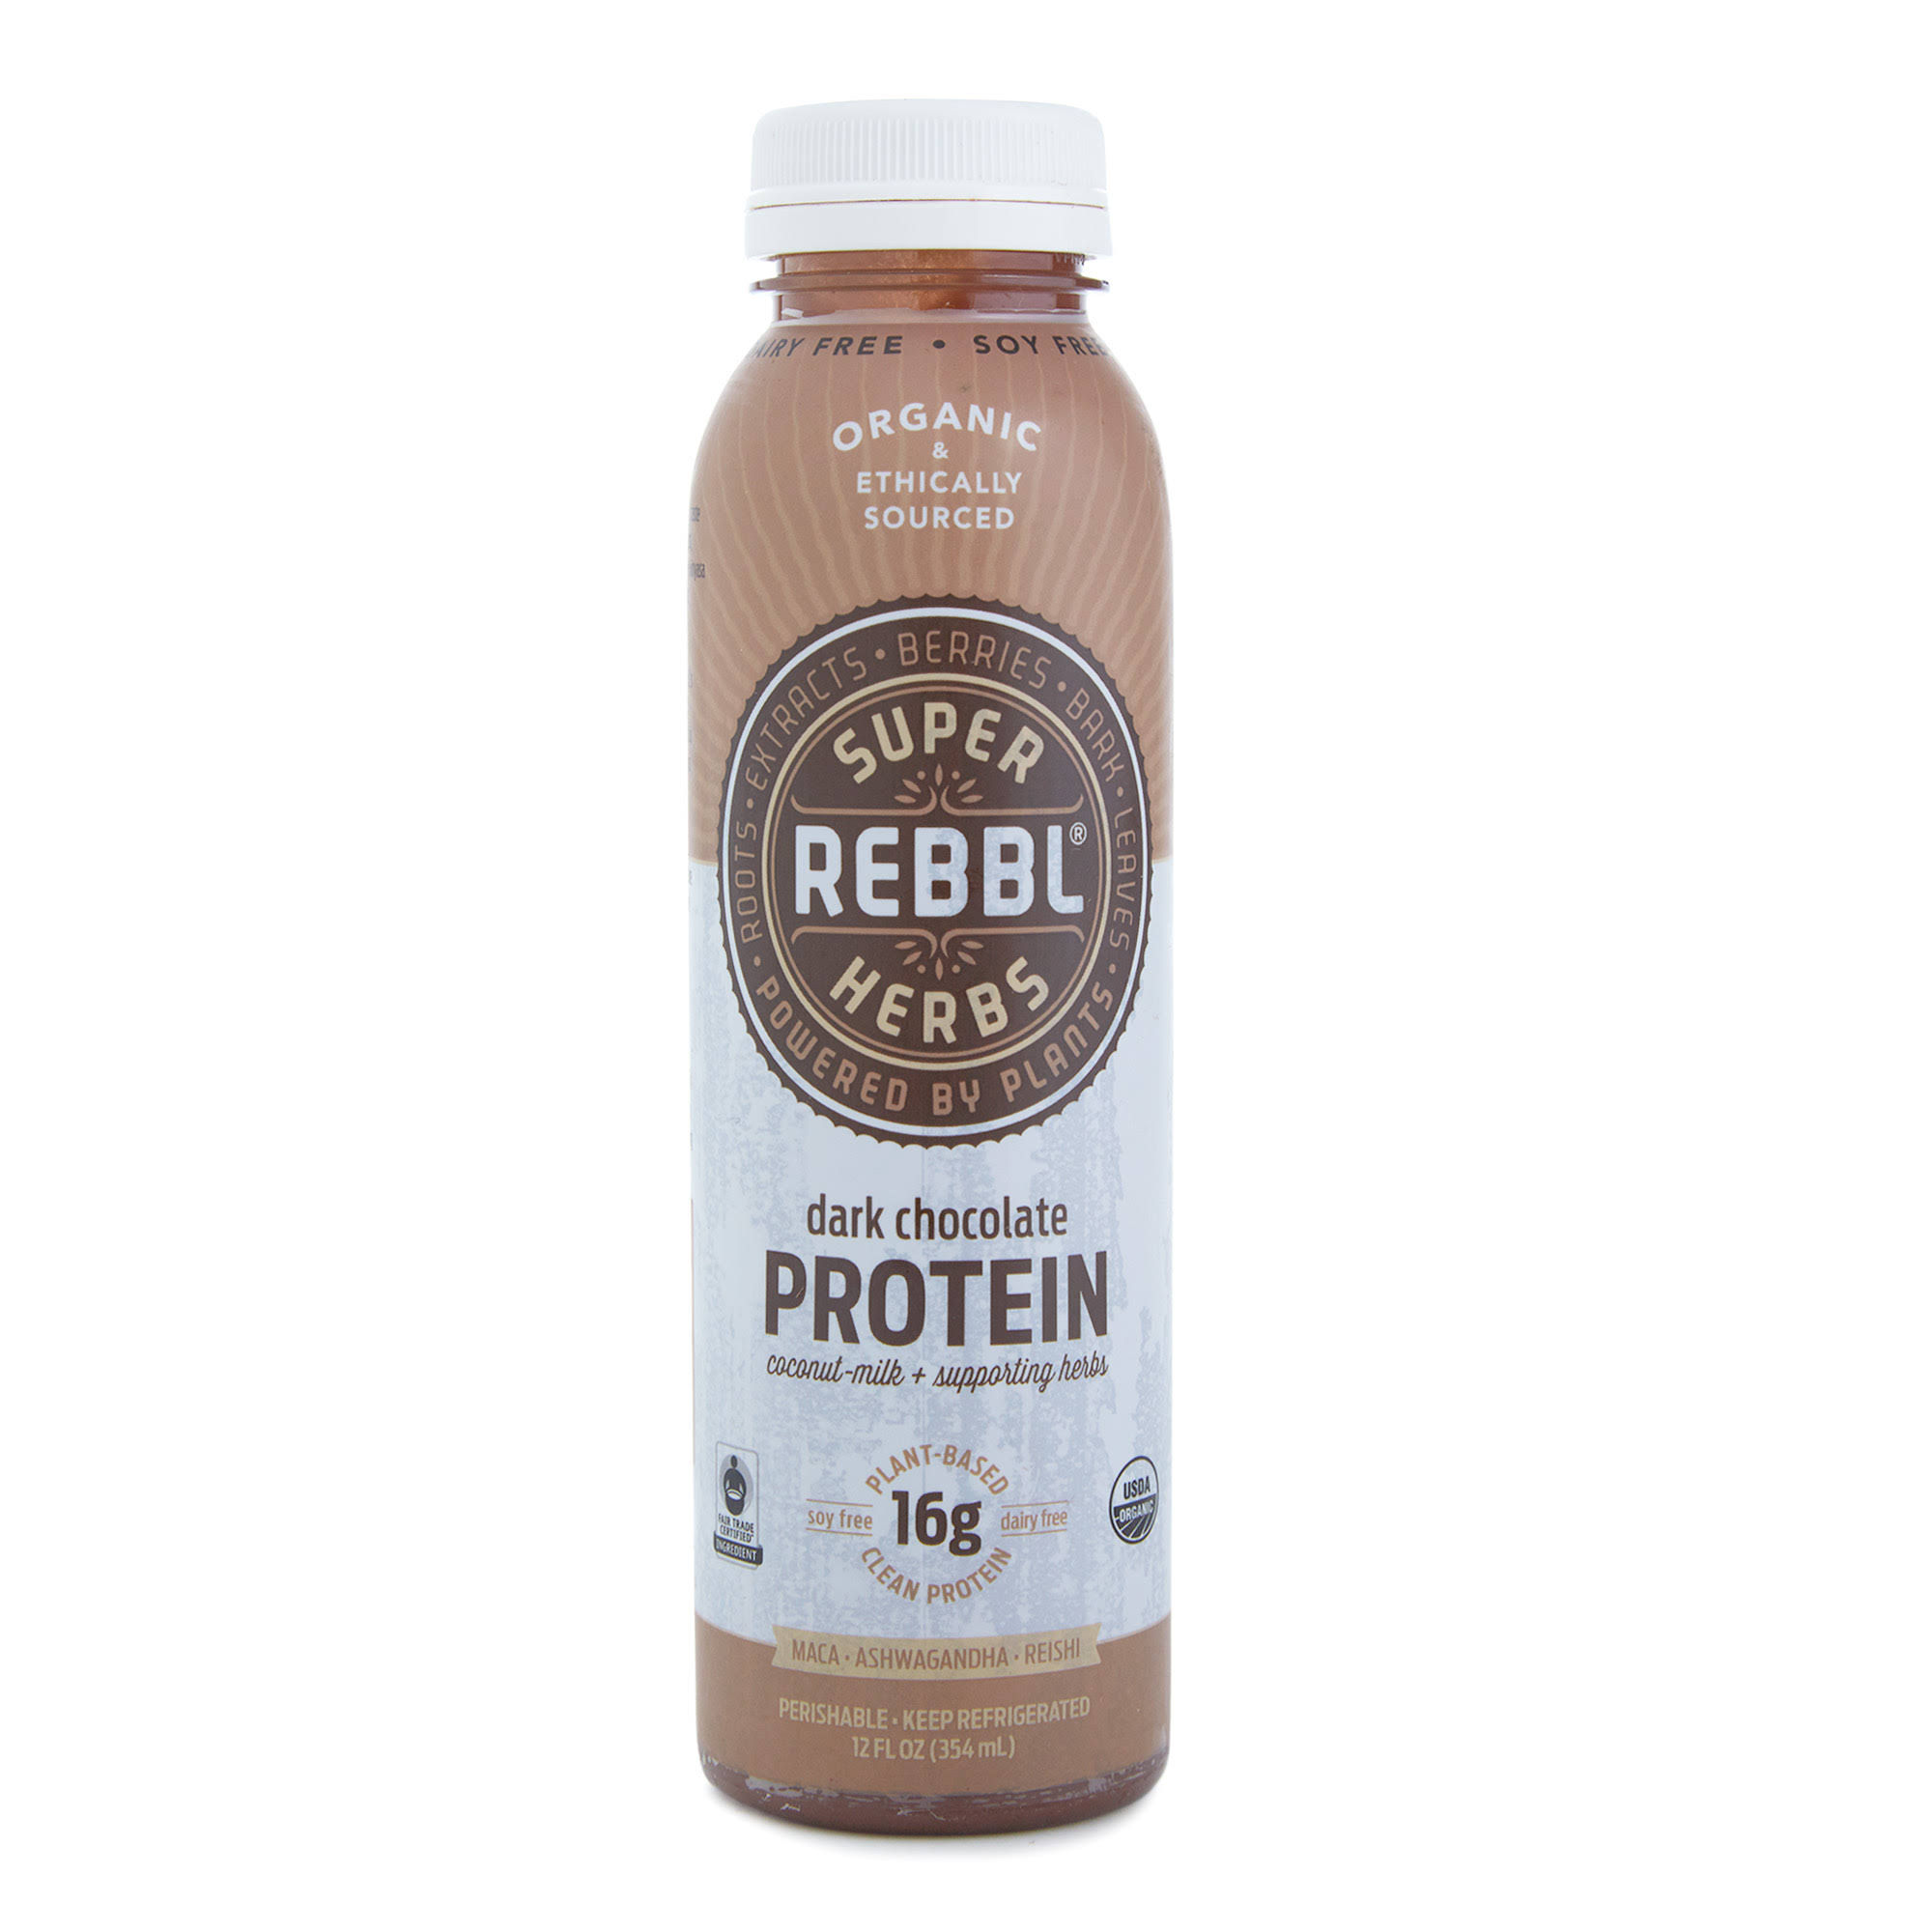 Rebbl Organic Protein Elixir Drink - Dark Chocolate, 12oz